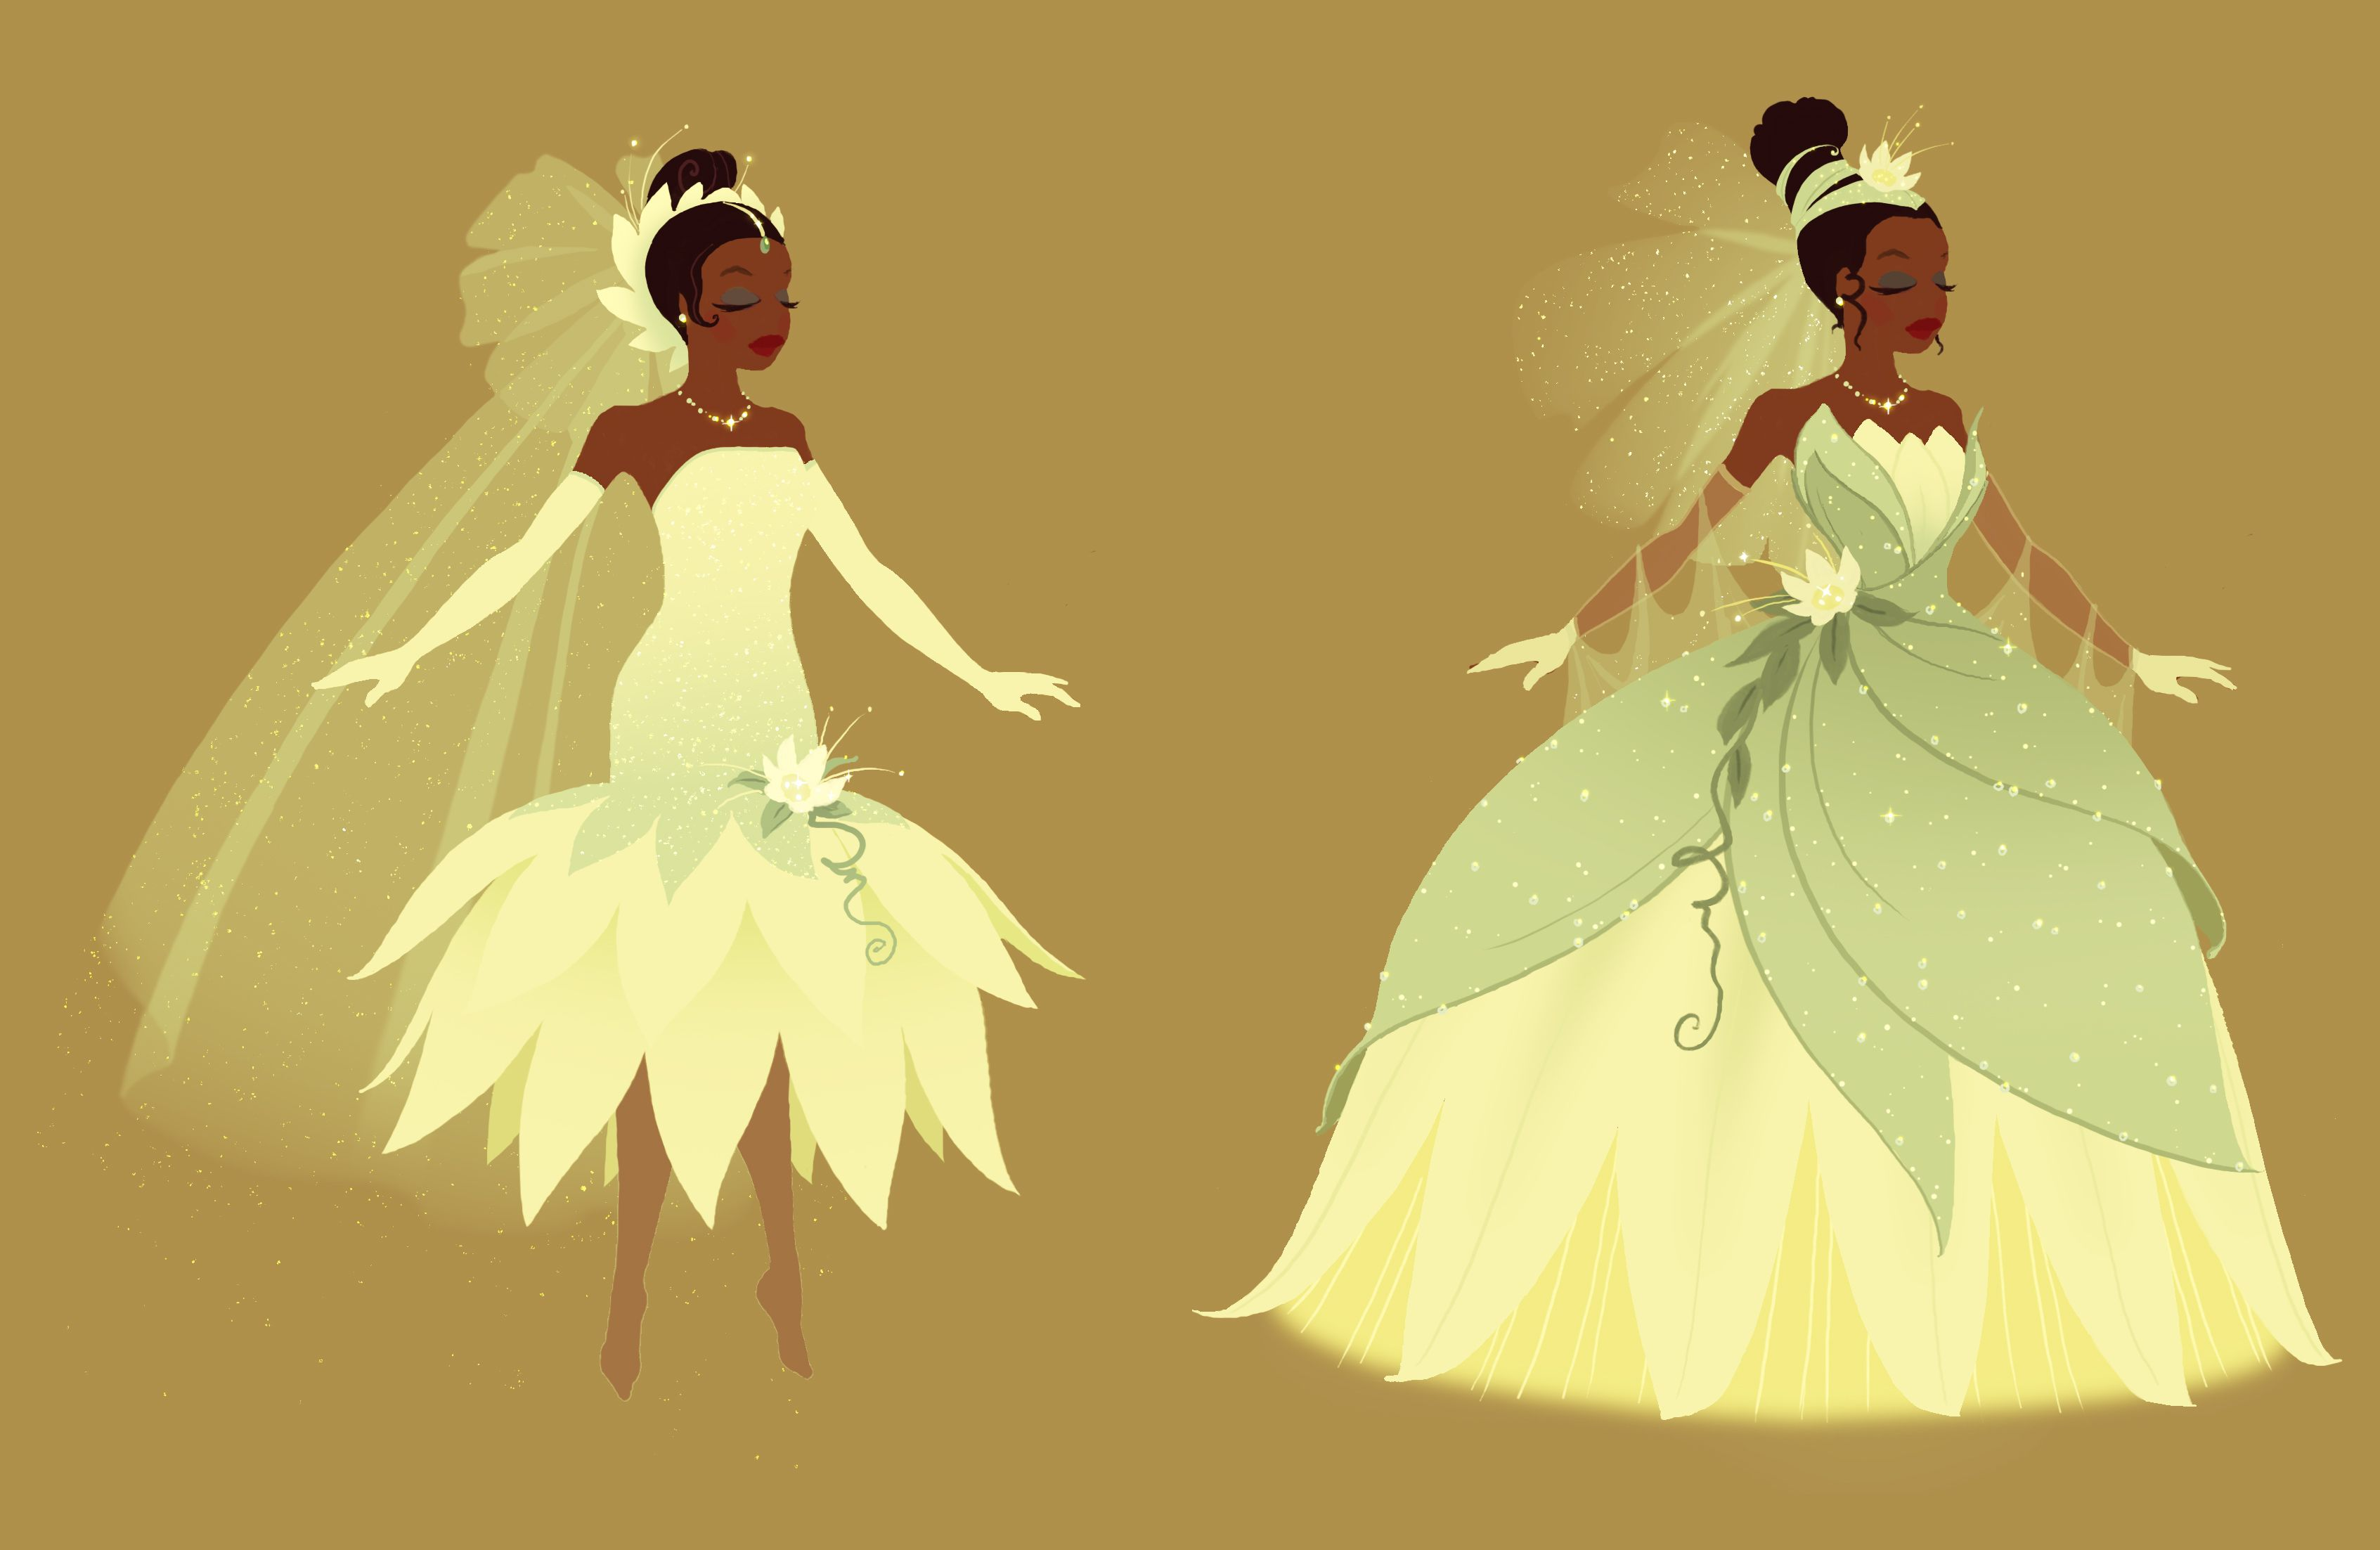 Princess and the frog outfit